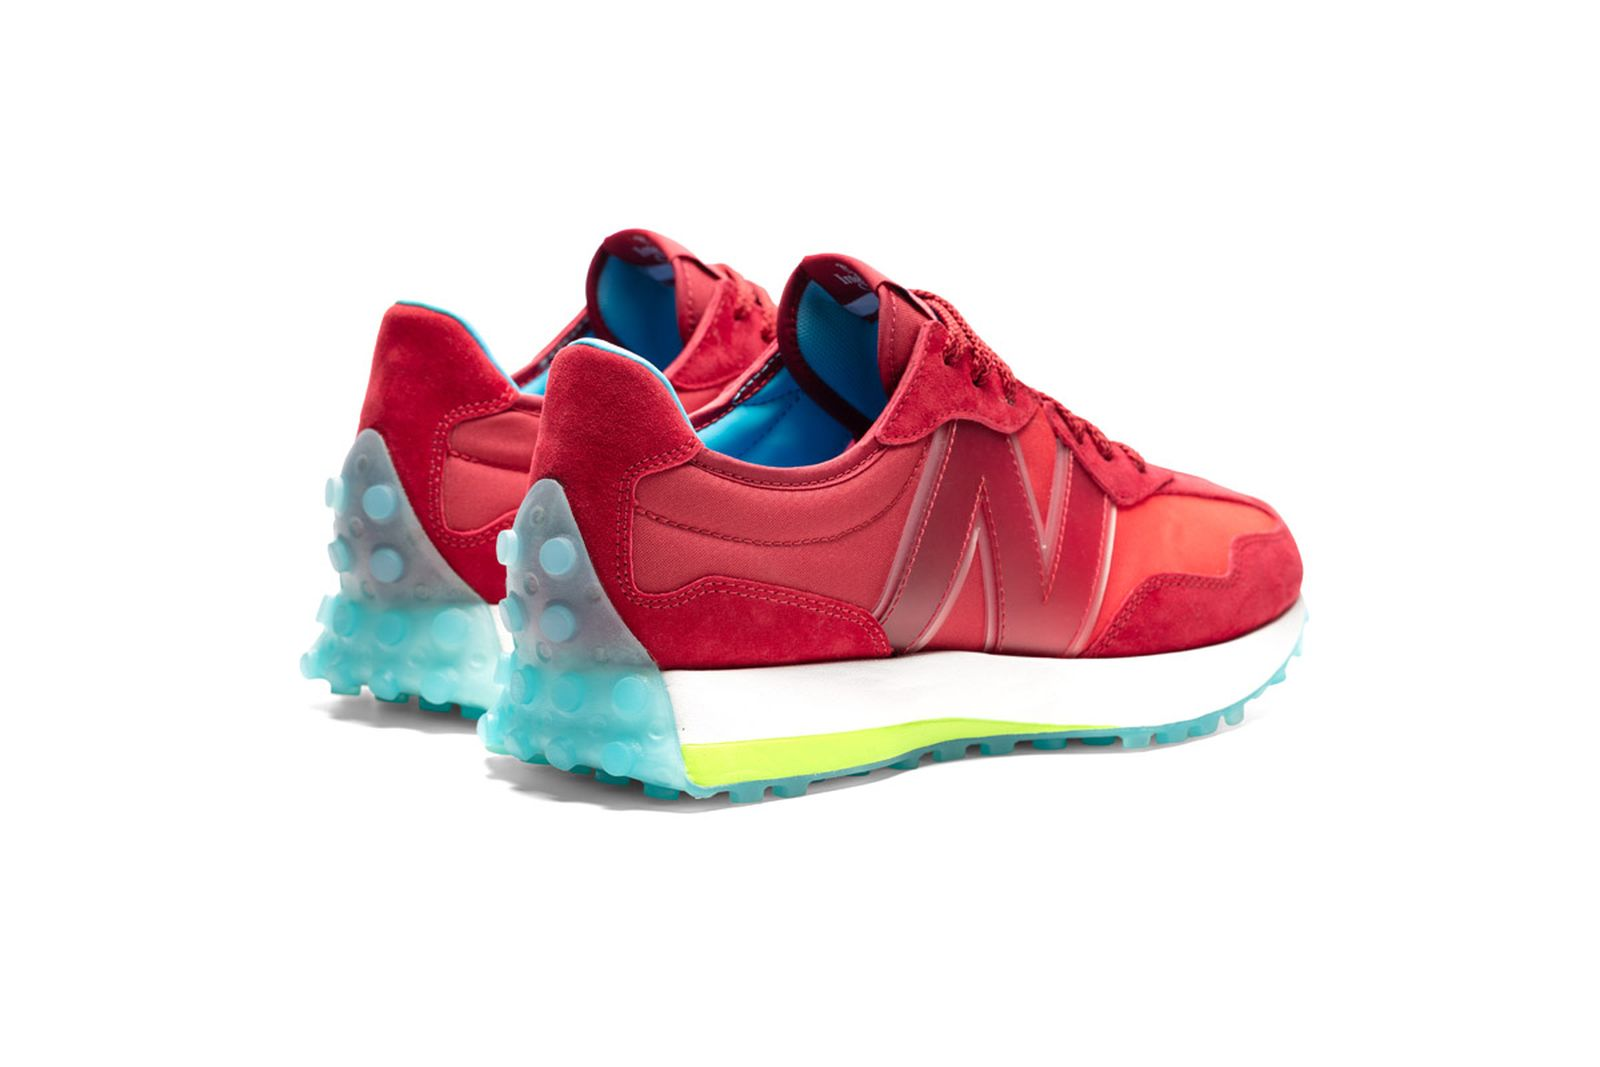 5new-balance-concepts-cranberry-product-shots